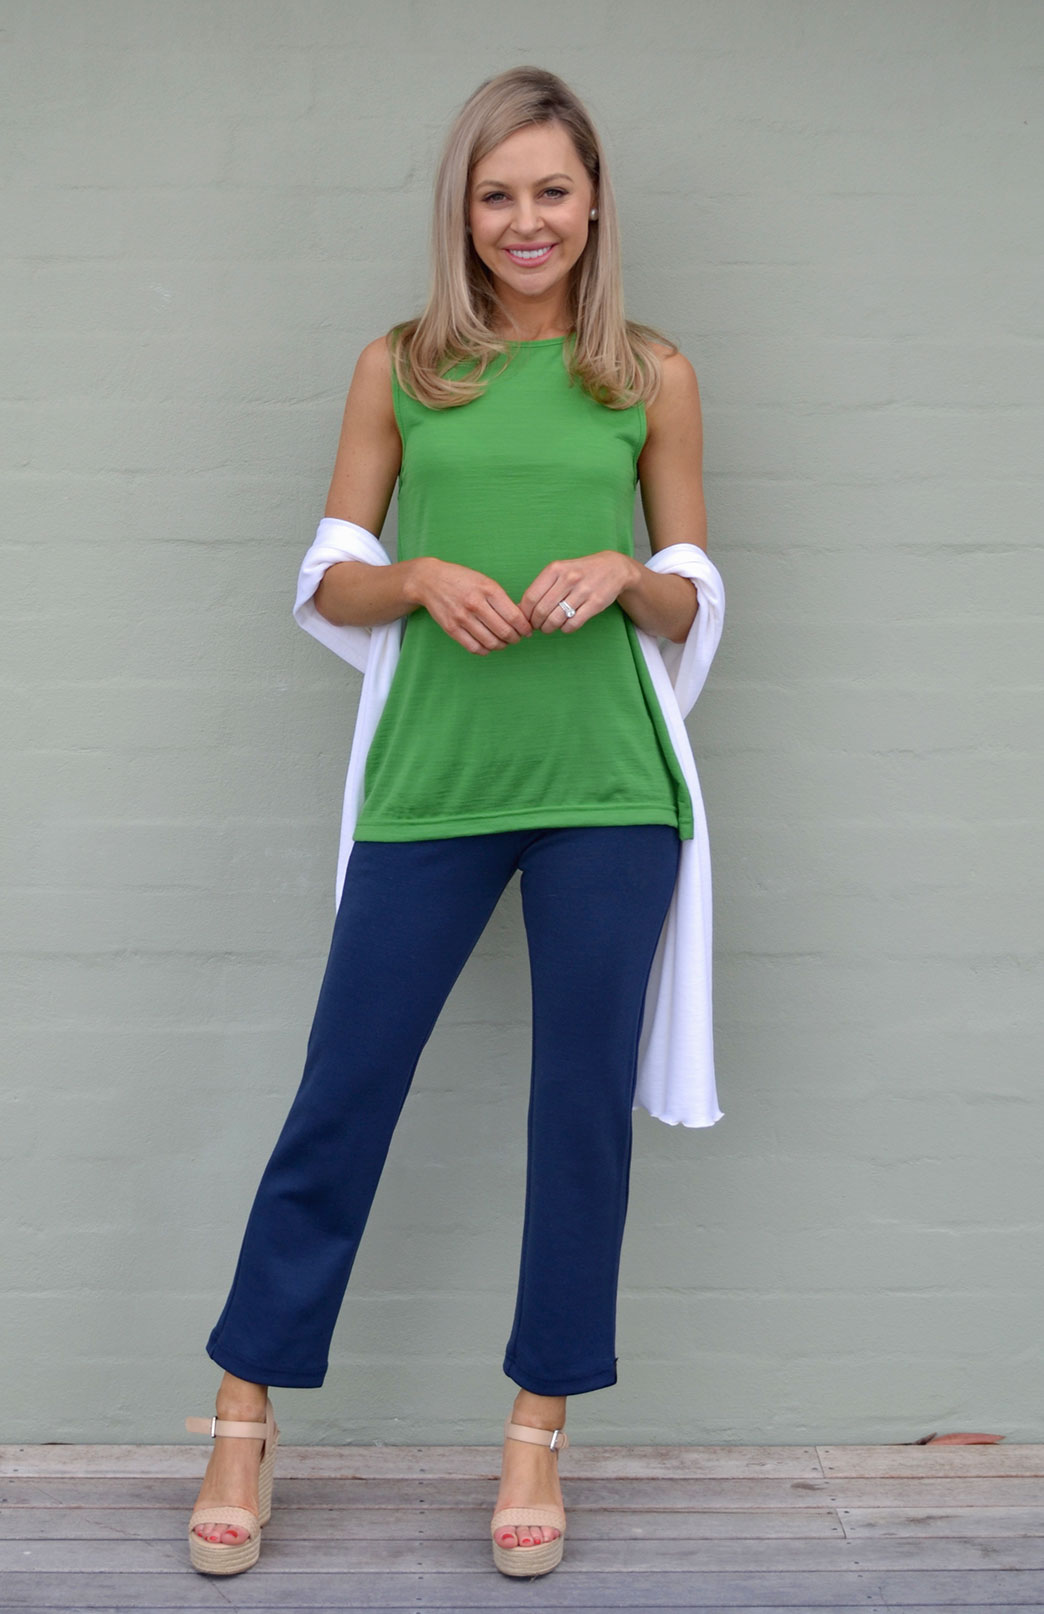 Capri Top - Women's Green Sleeveless Merino Wool Tank Top with High Neckline - Smitten Merino Tasmania Australia